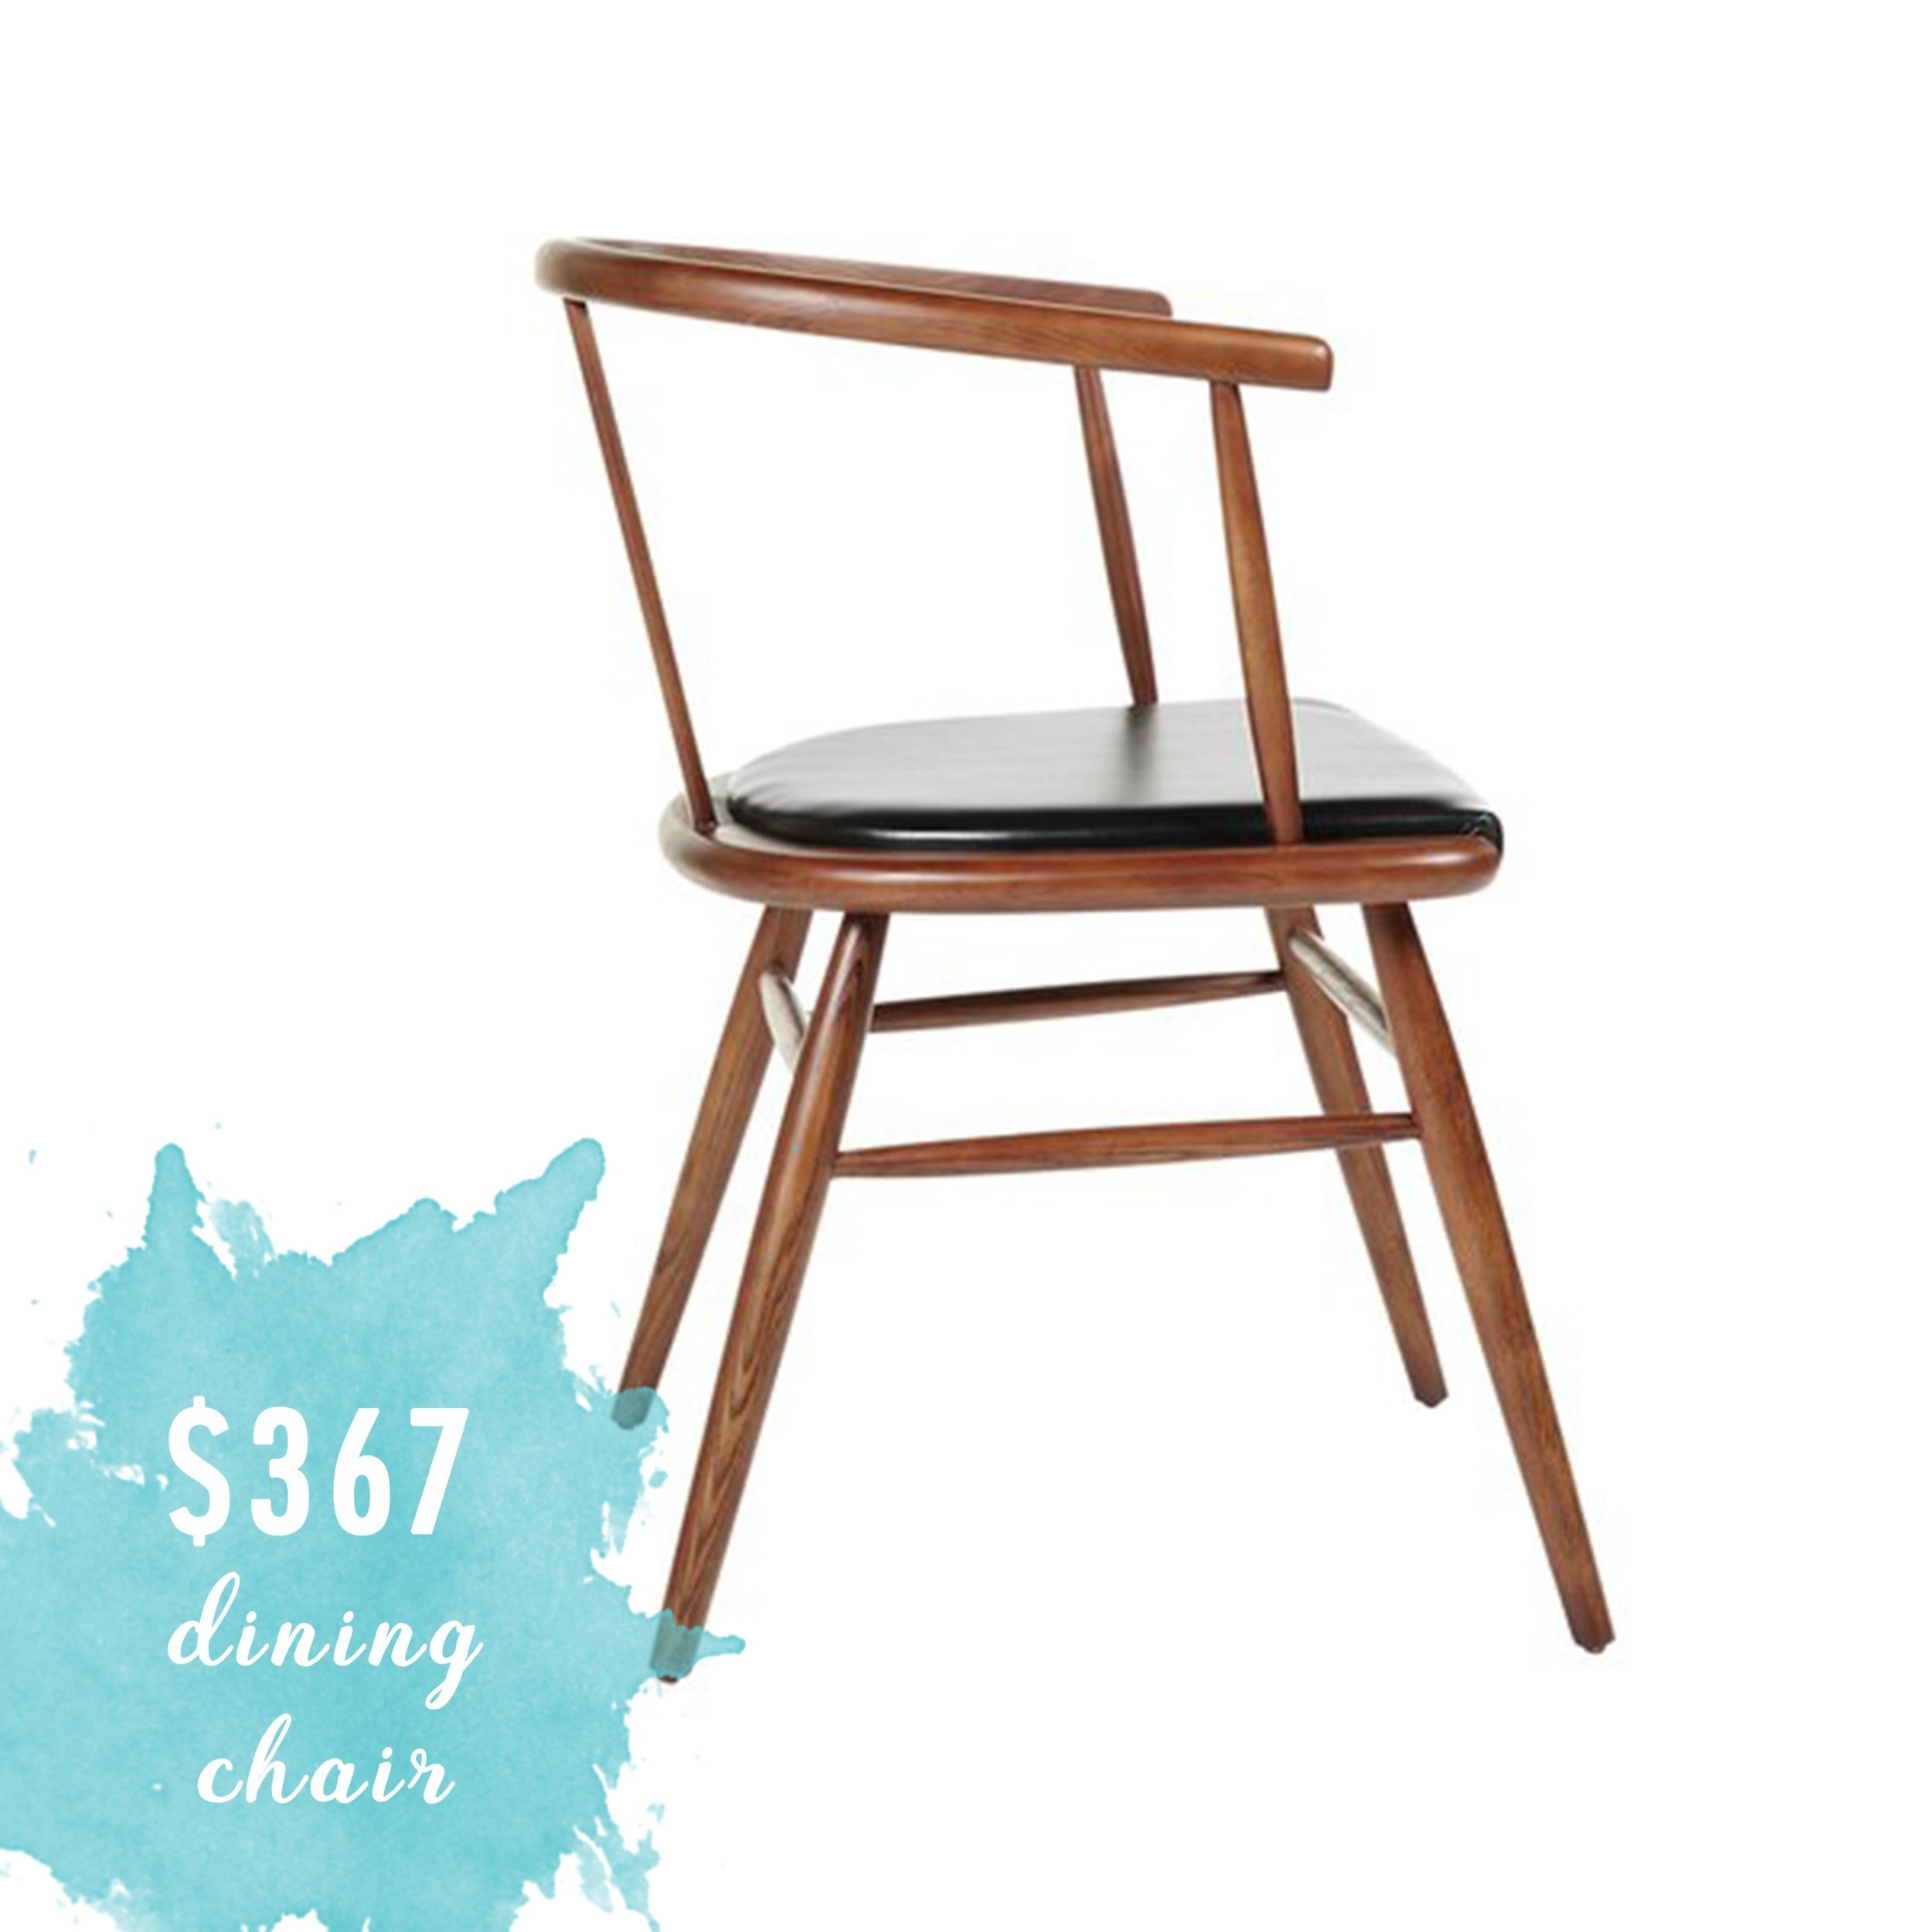 dm dining chair.png